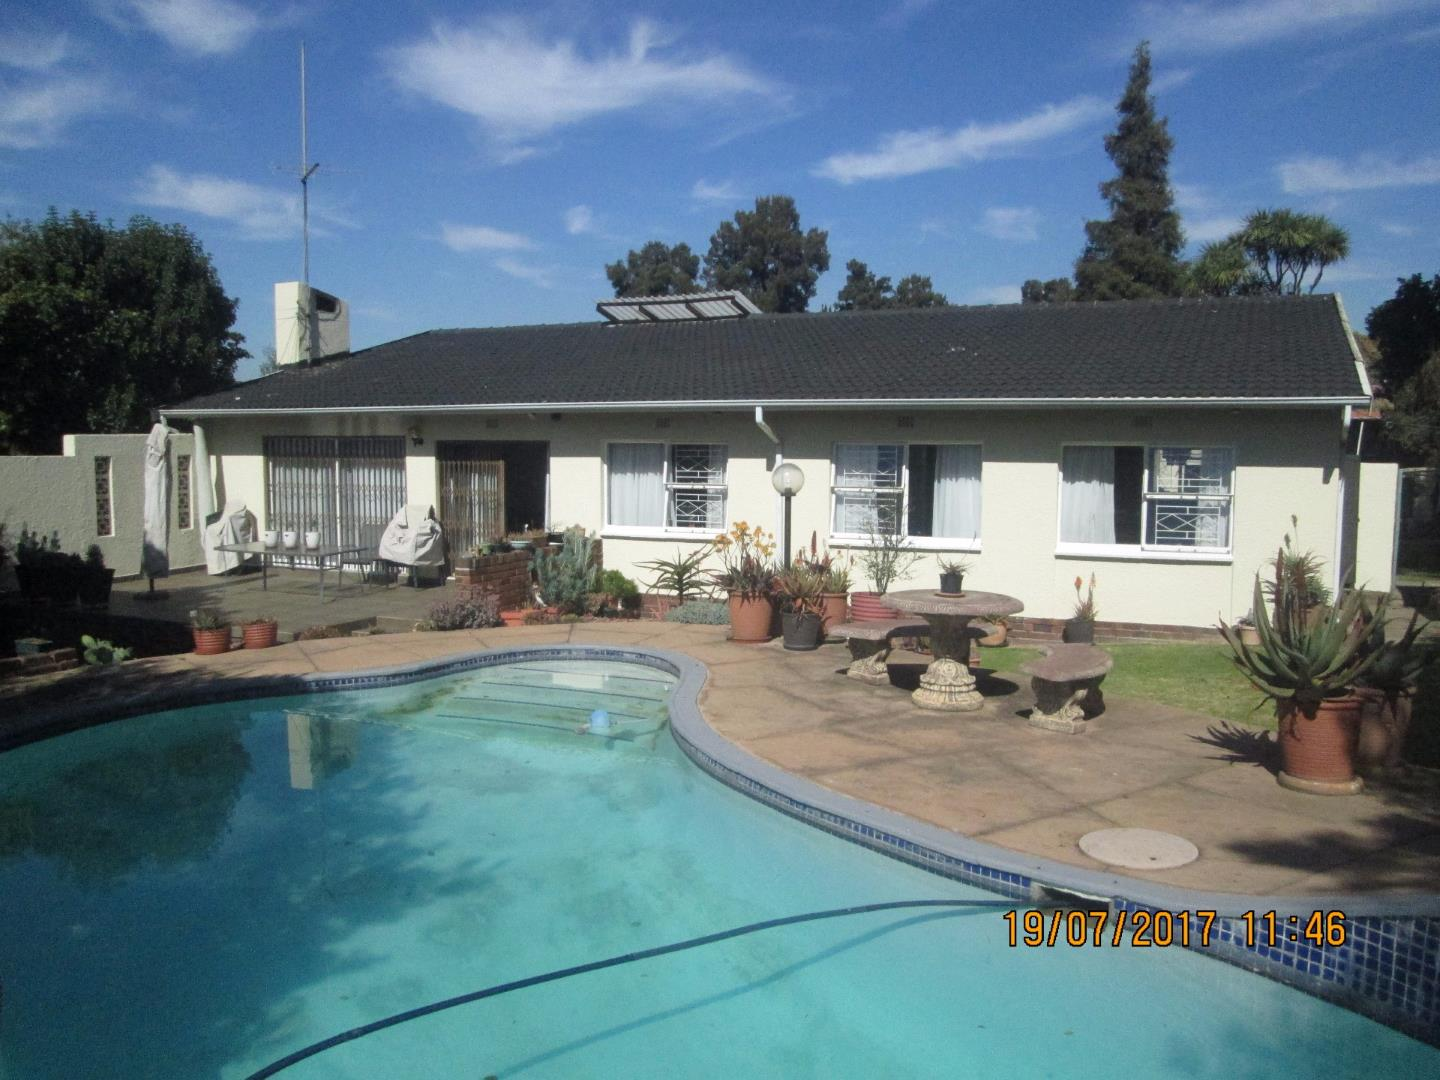 Johannesburg, Meredale Property  | Houses For Sale Meredale, Meredale, House 3 bedrooms property for sale Price:1,650,000